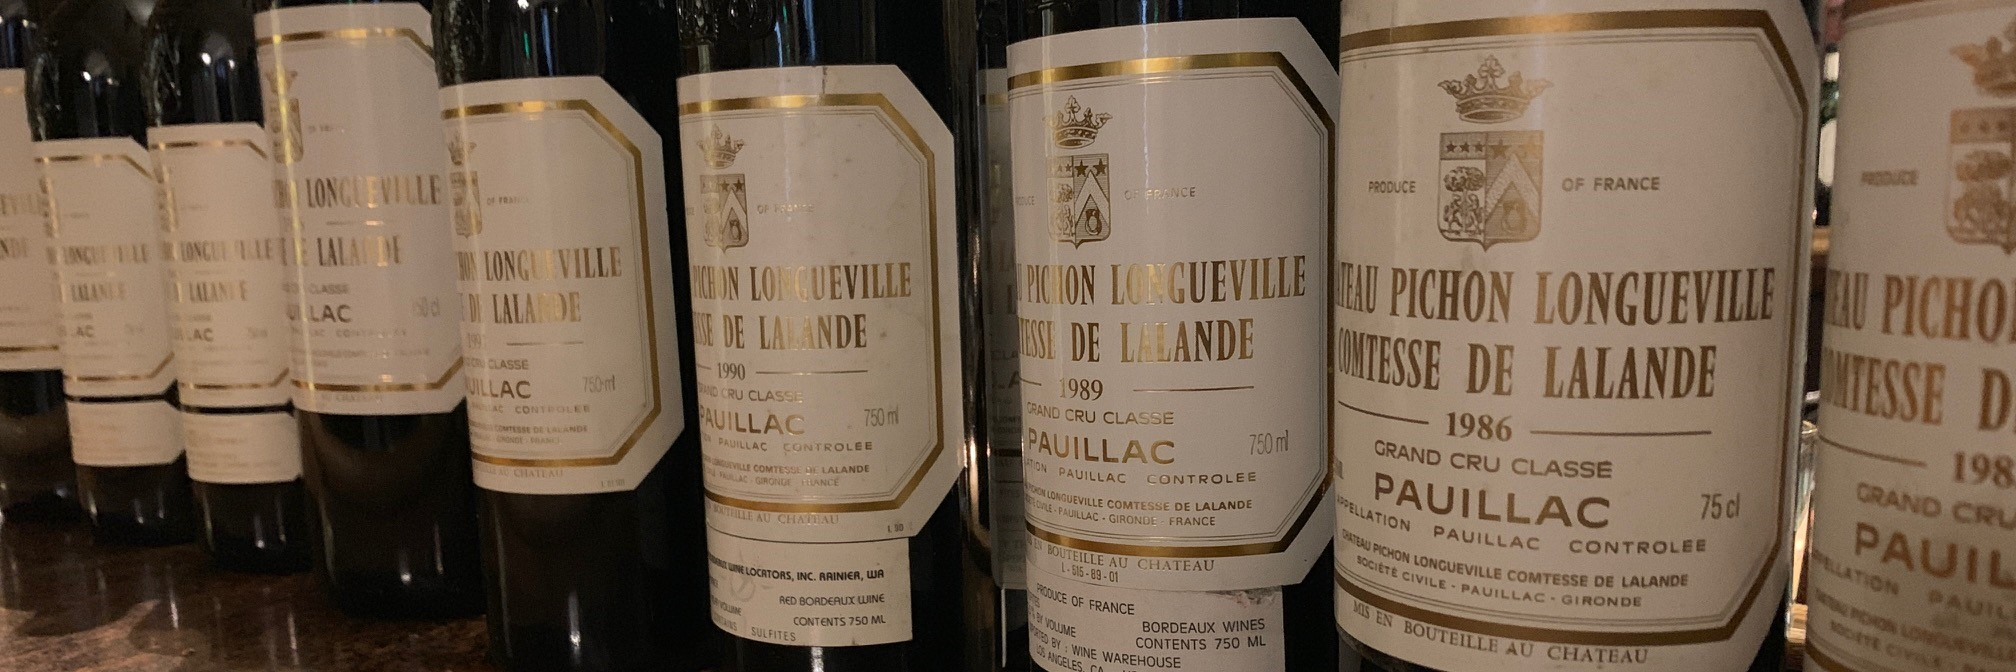 Ten Vintages of Pichon-Lalande from 2010 to 1981